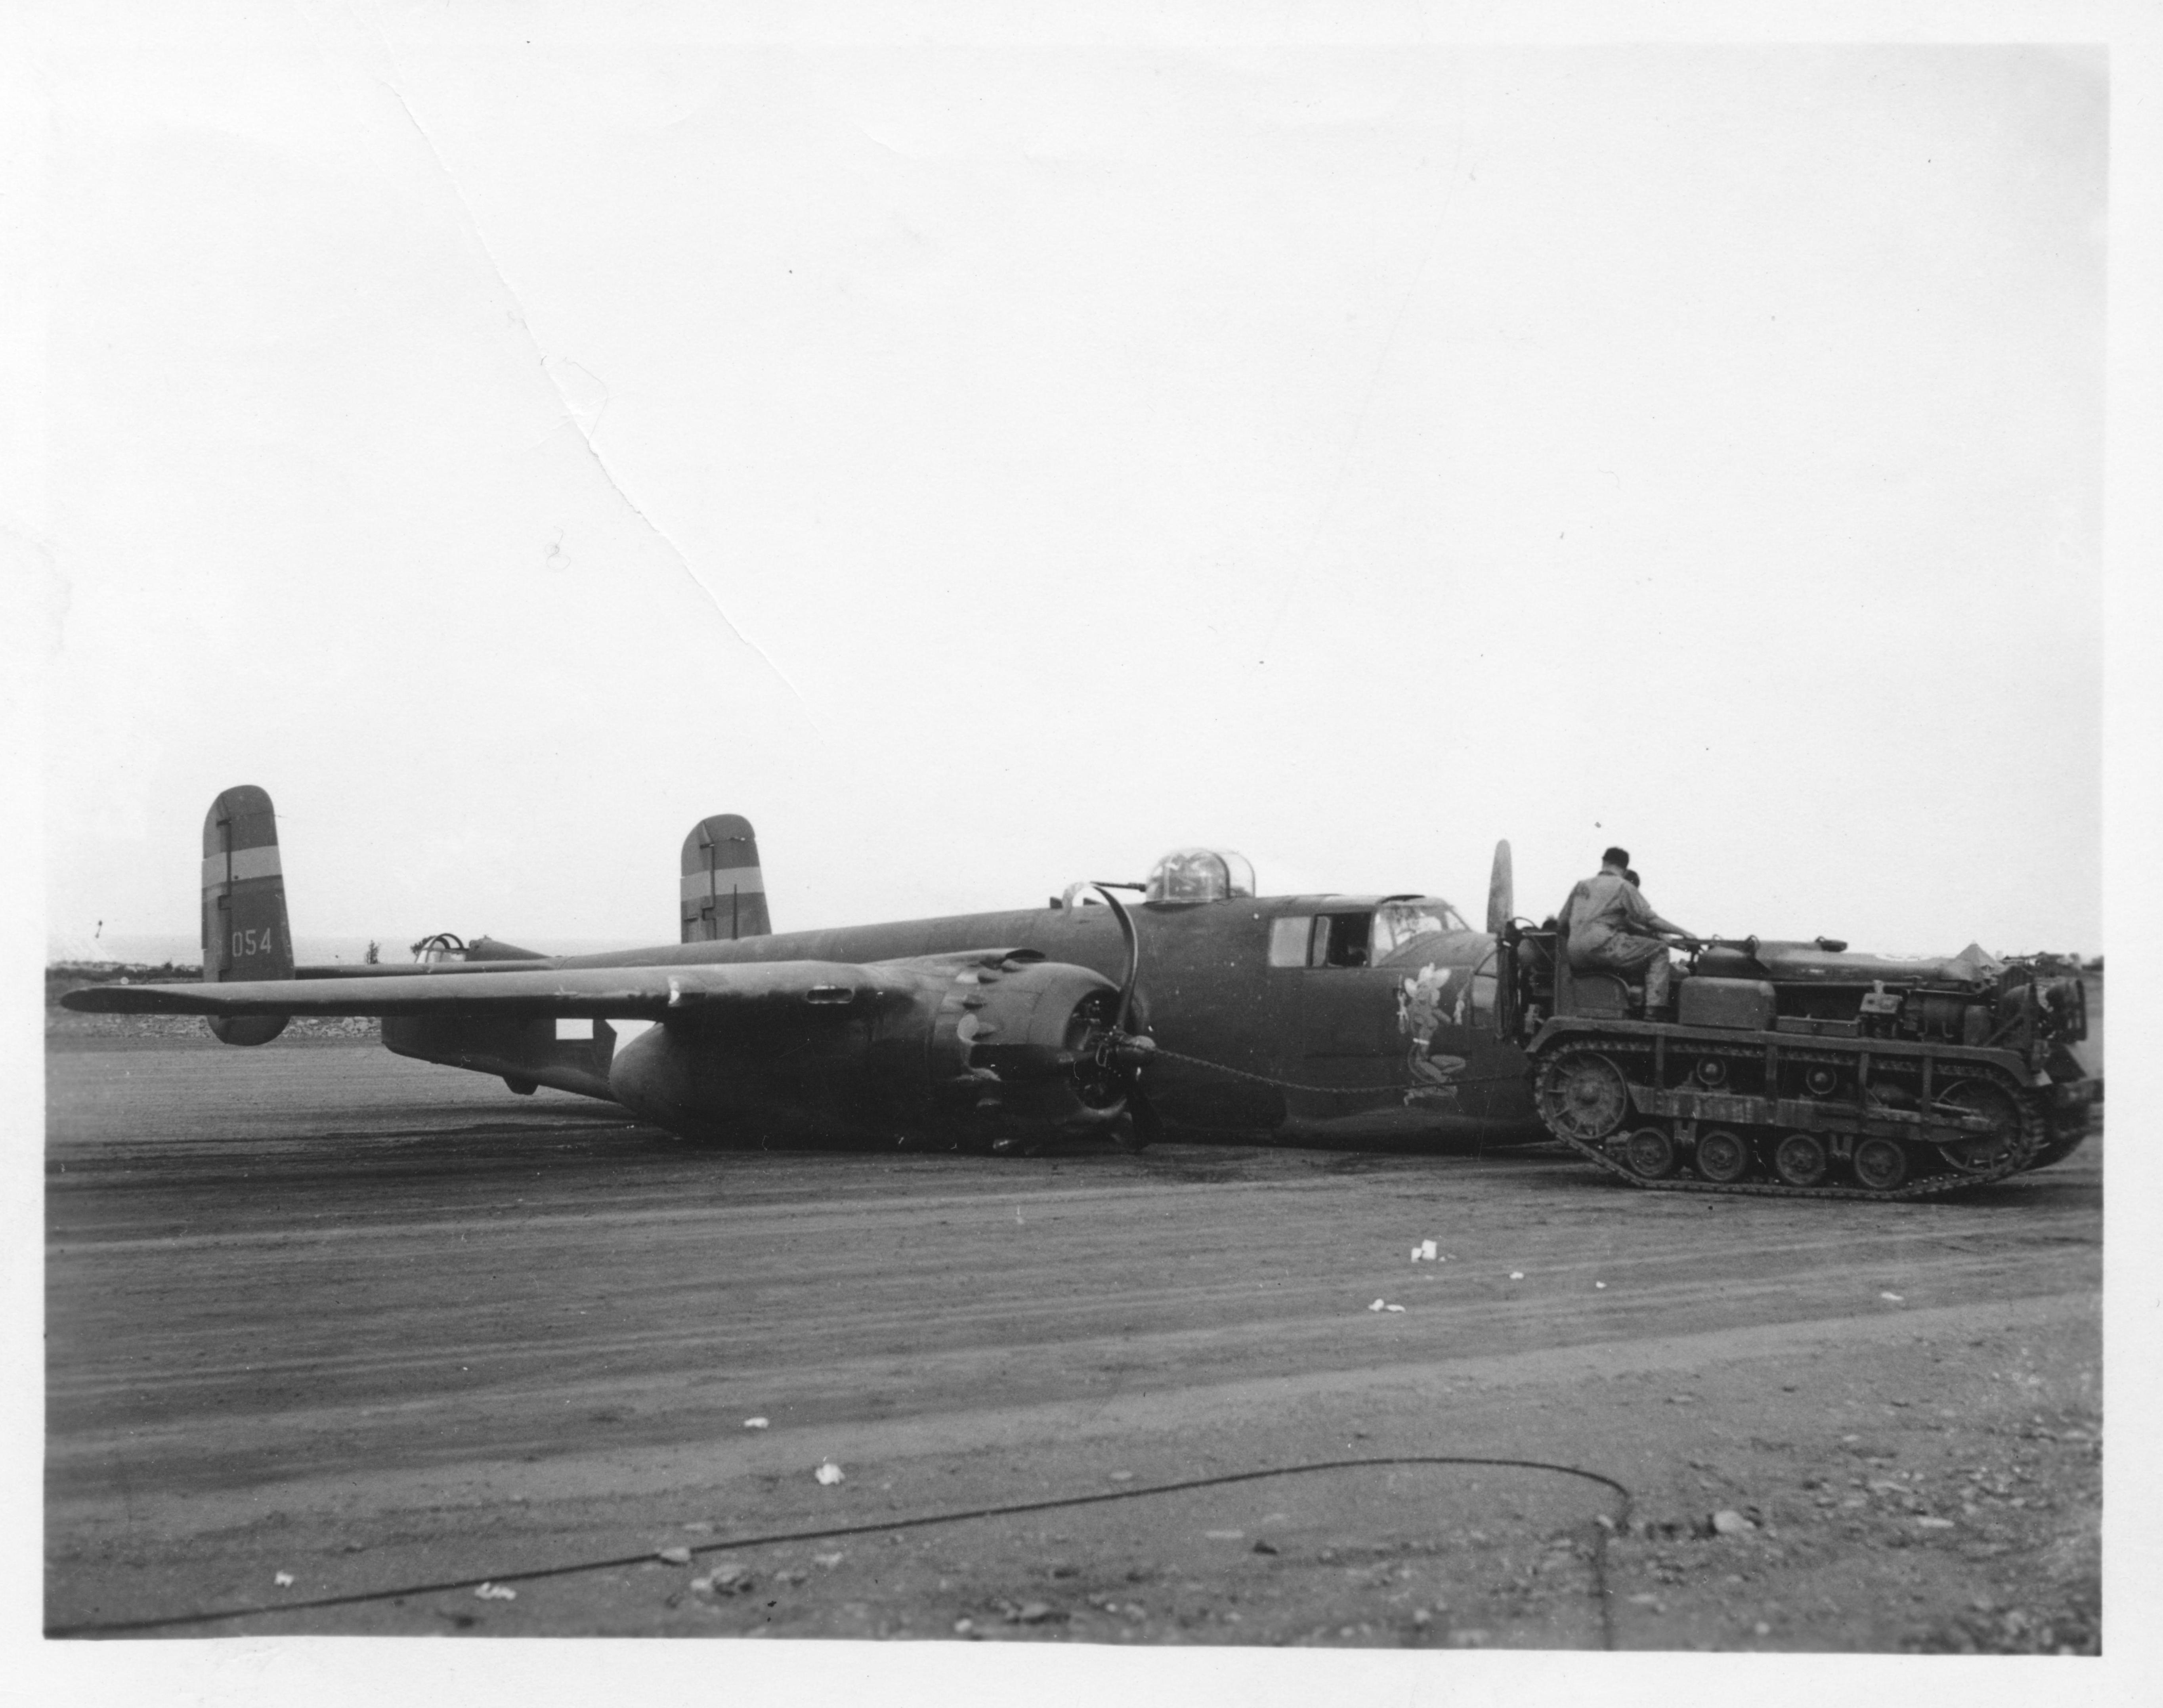 gtb_plane.jpg - Glenn T. Black's B-25J, June 22, 1944, at the end of his 56th mission, being towed off the runway by a cletrac